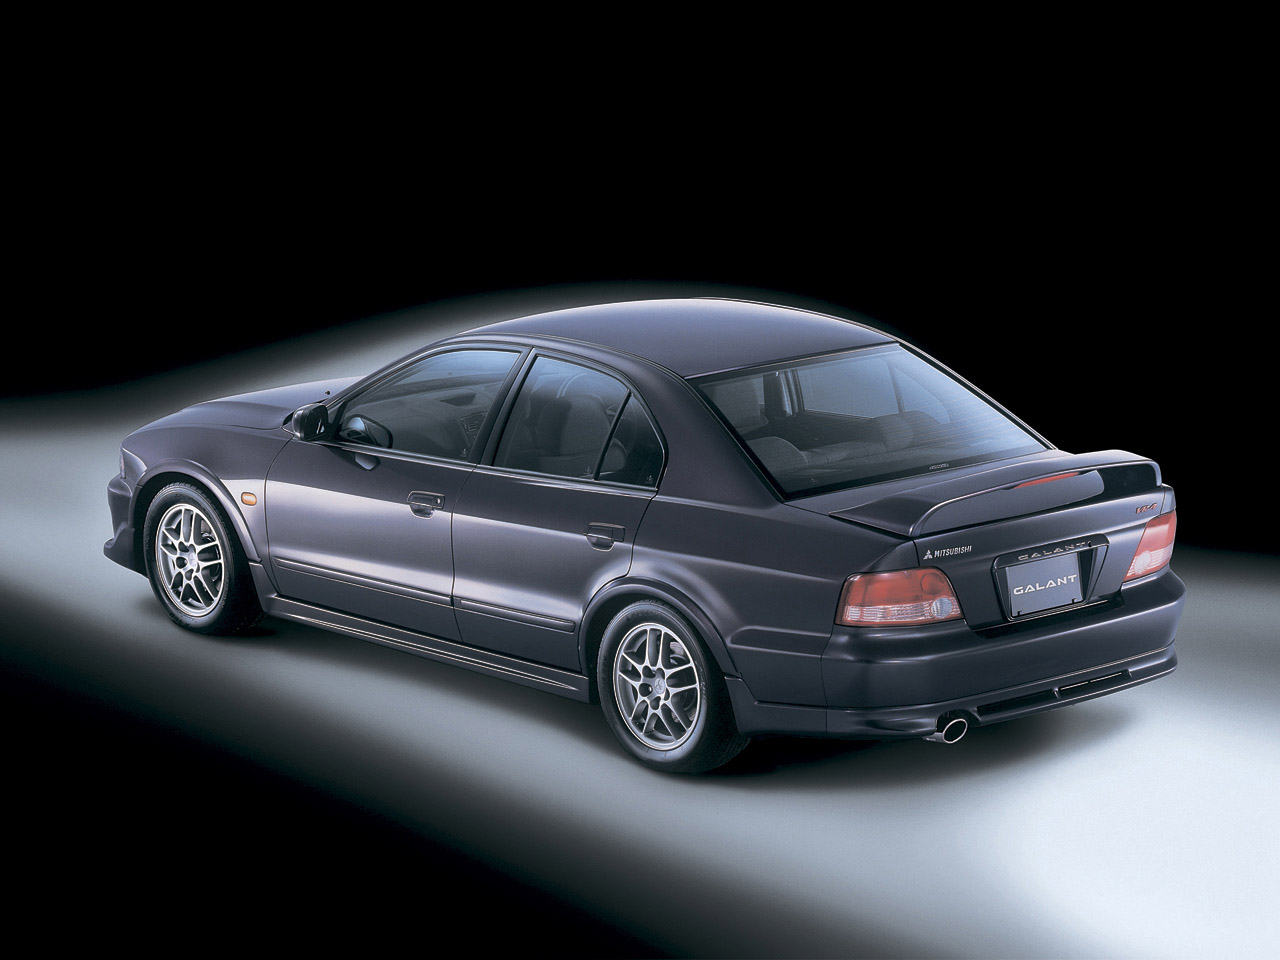 Galant Mitsubishi Galant Vr-4 Type S:picture # 7 , Reviews, News